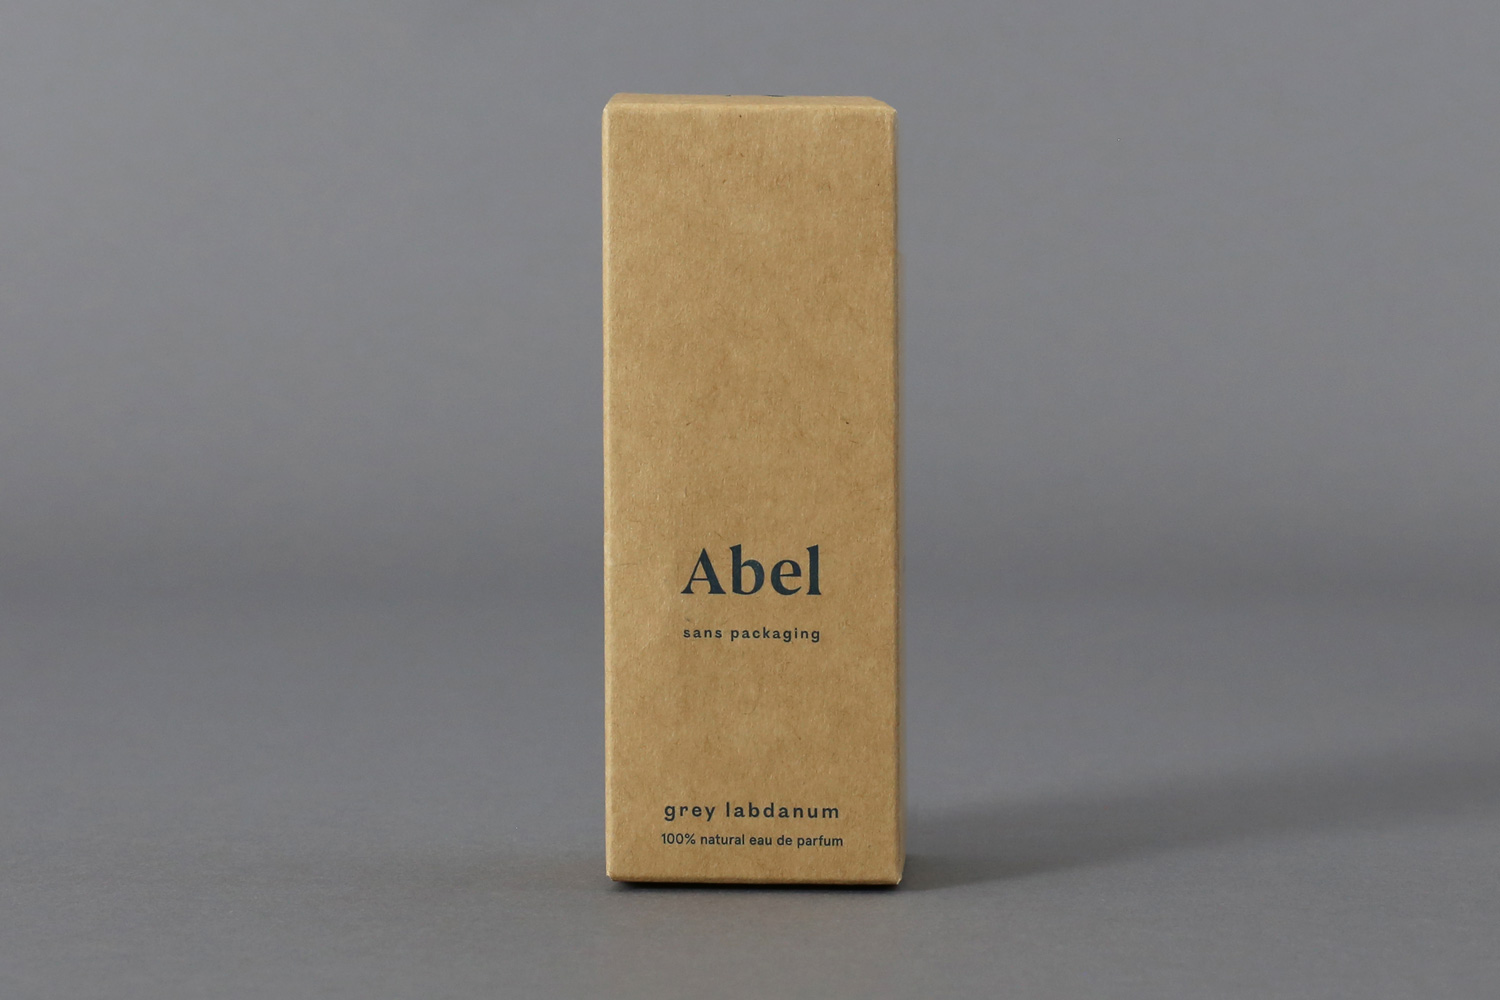 Progress Packaging Recyclable Environmentaly Eco Friendly Mindfully Responsibly Sourced Beauty Fragrance Bottle Glass Retail Luxury Branded Gift Creative Bespoke Production Manufacture 4